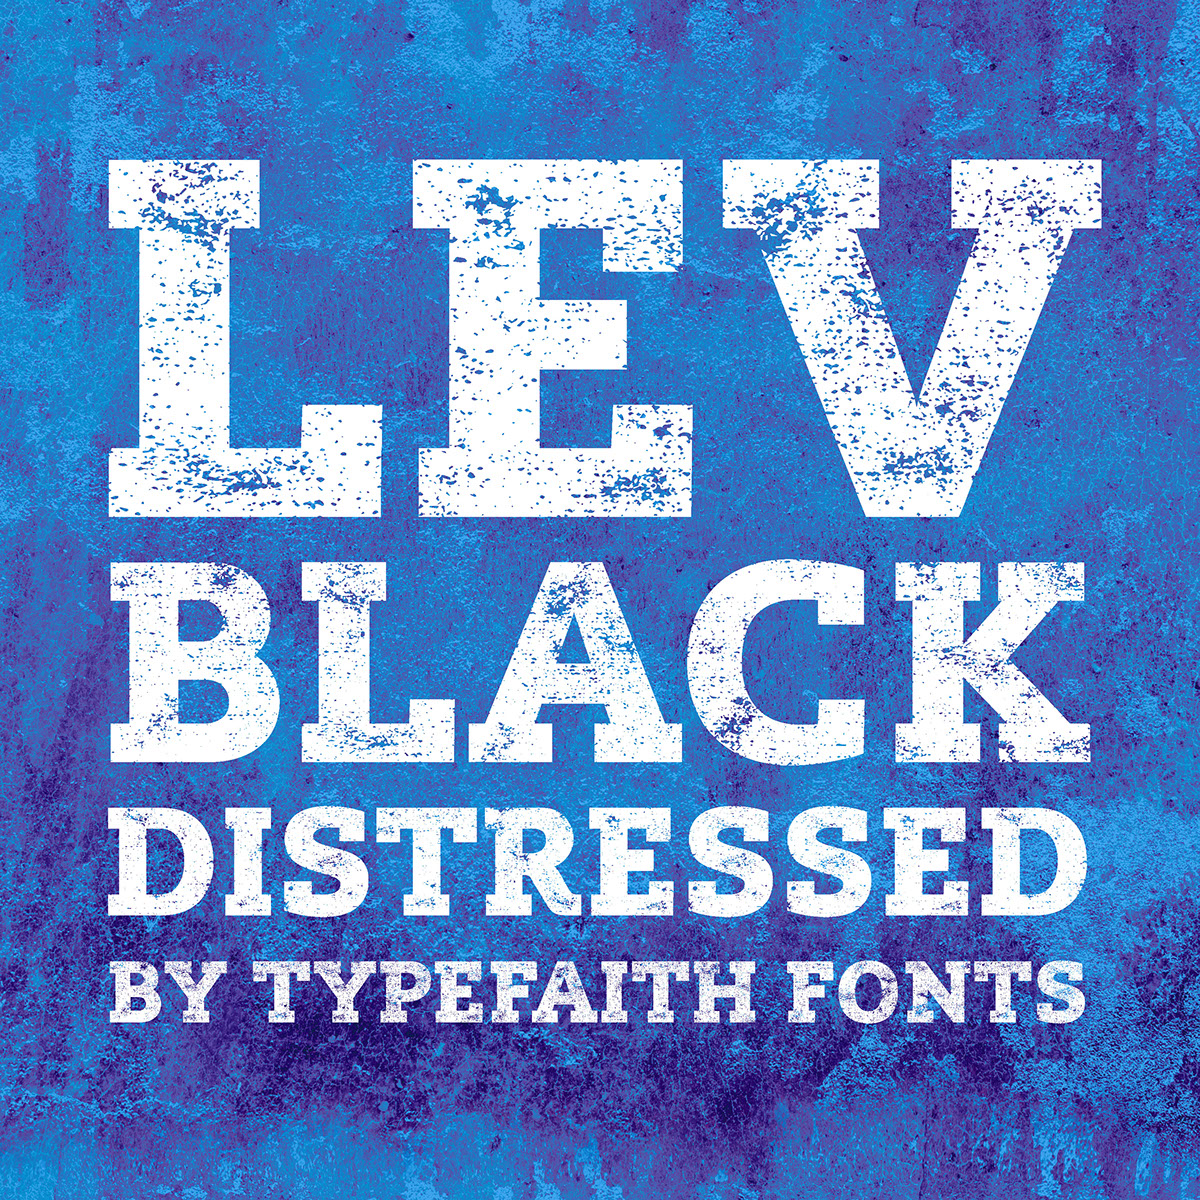 Free font font Typeface TypeFaith Fonts Distressed free